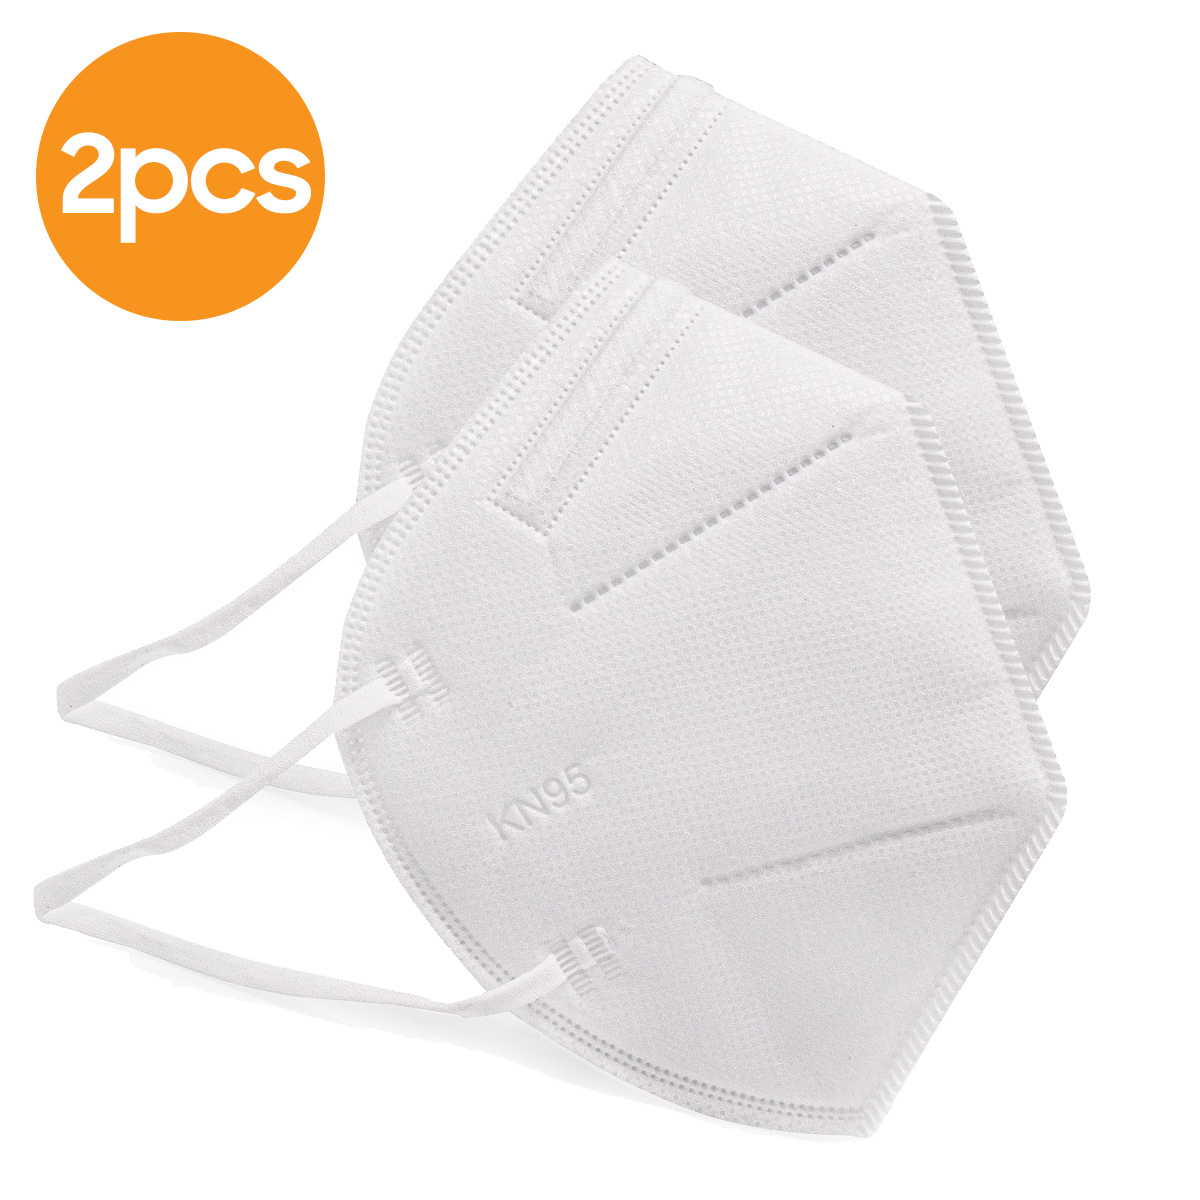 KN95 CE FFP2 Face Mask With 4 Layers - Earloop - 2 Pack